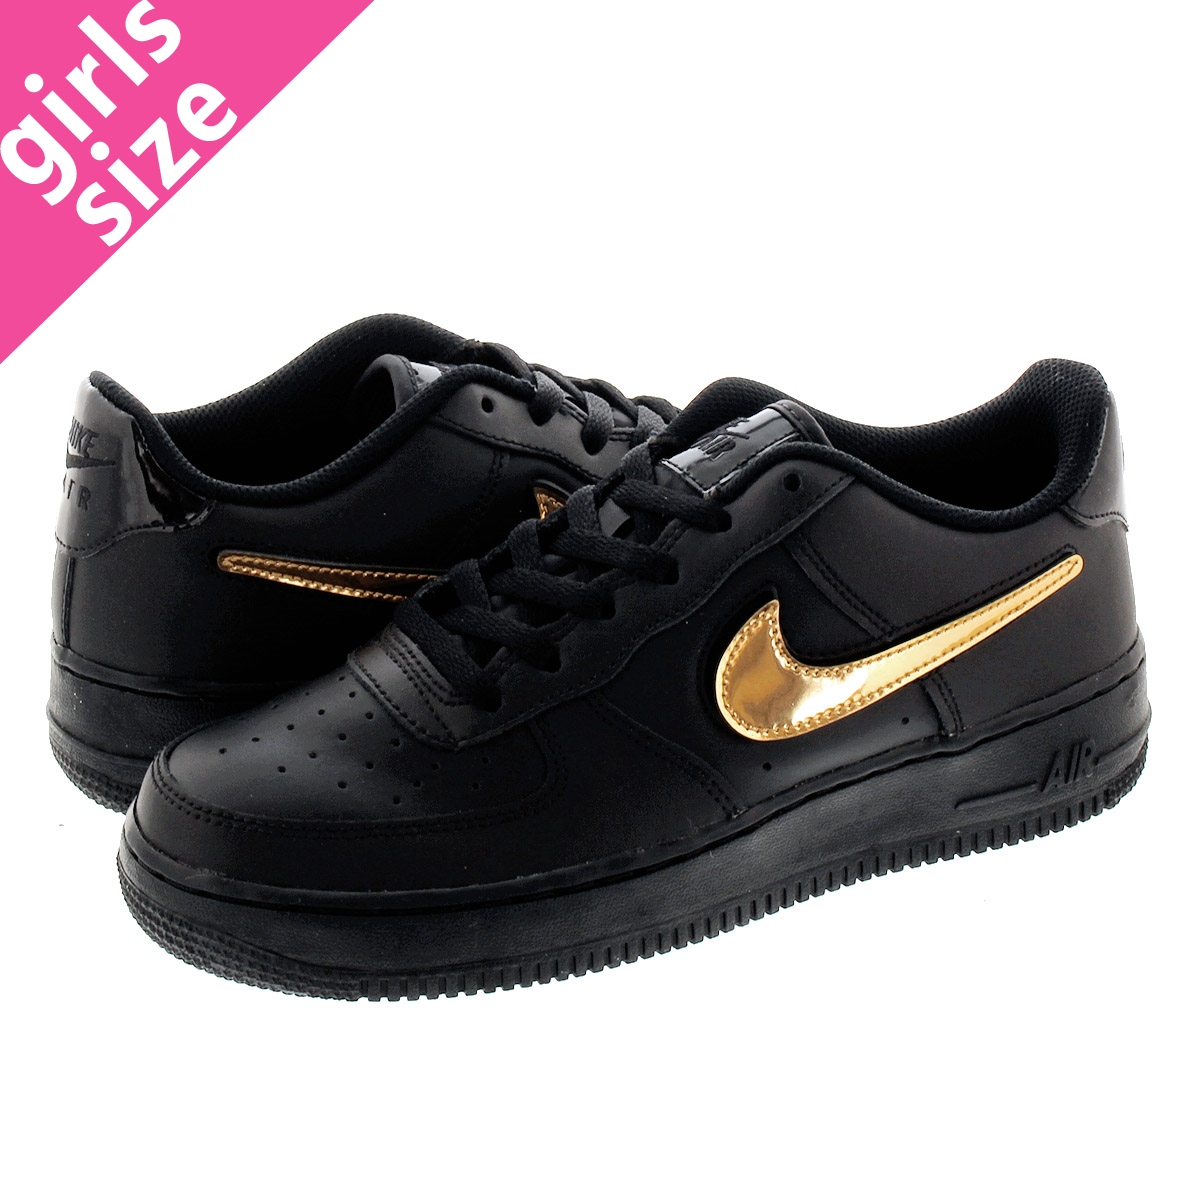 NIKE AIR FORCE 1 LV8 3 GS Nike air force 1 LV8 3 GS BLACKBLACKWHITE ar7446 001